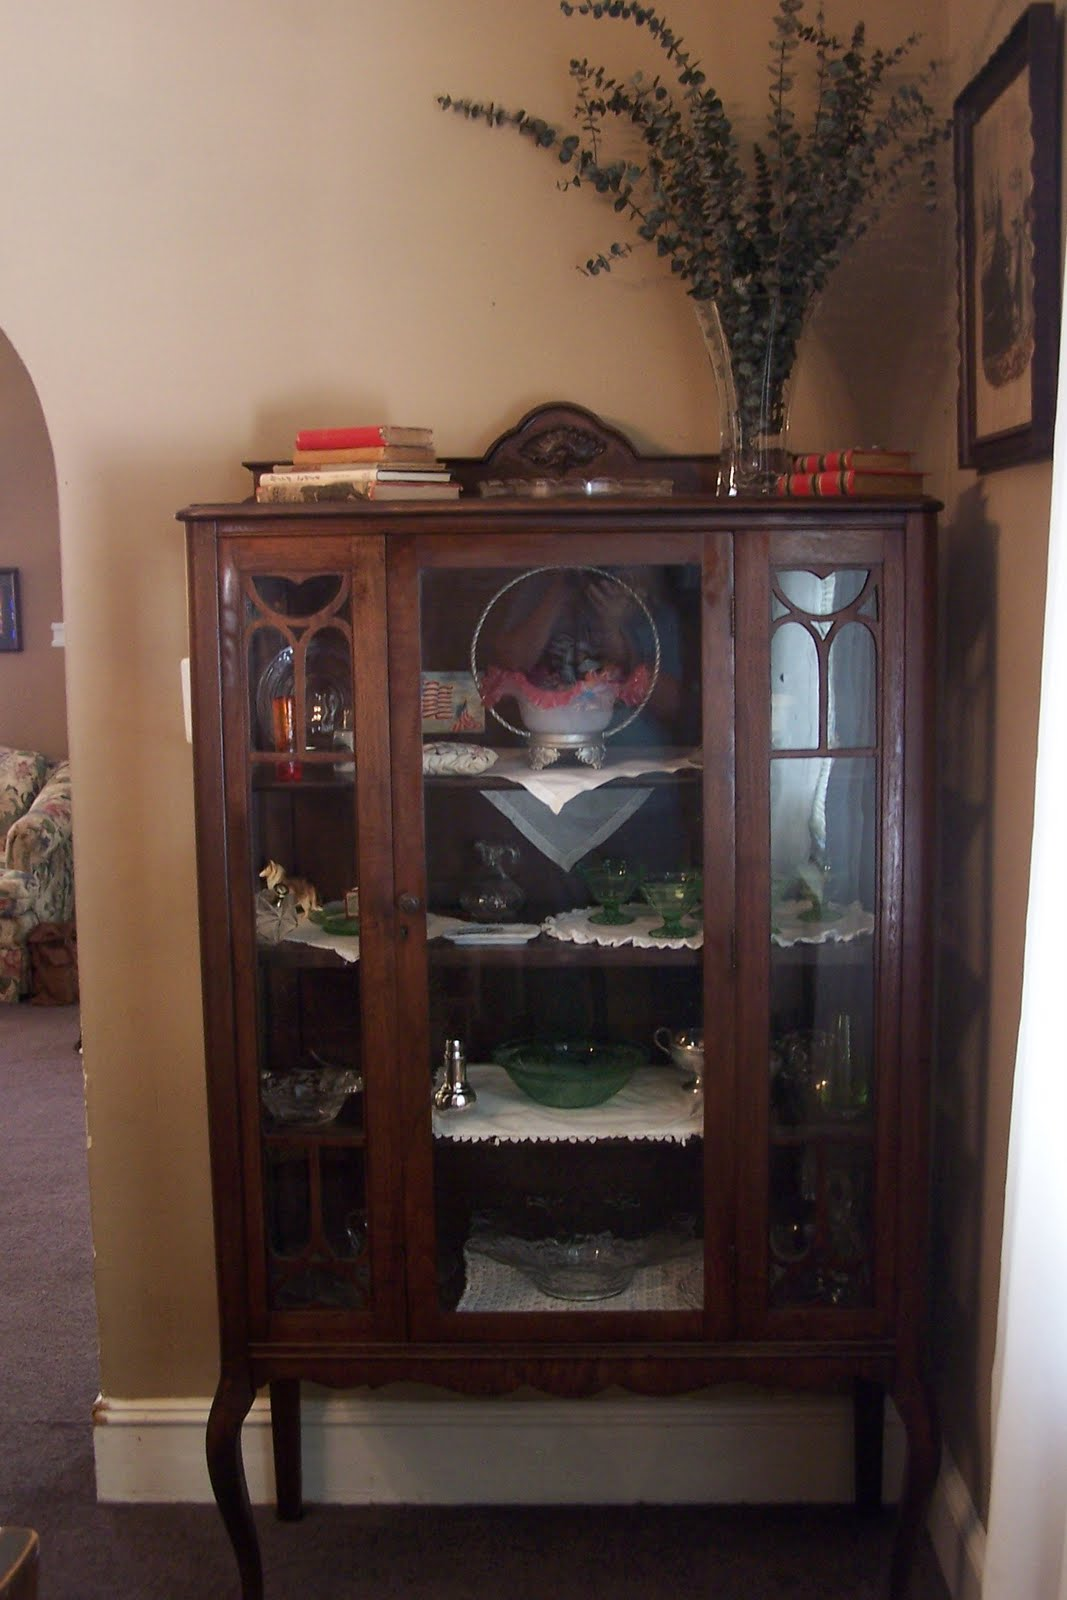 Ordinaire We Hauled It Home Today And Iu0027ve Spent The Day Moving Some Things From The Other  Cabinet And Putting In Things I Didnu0027t Have Room For.